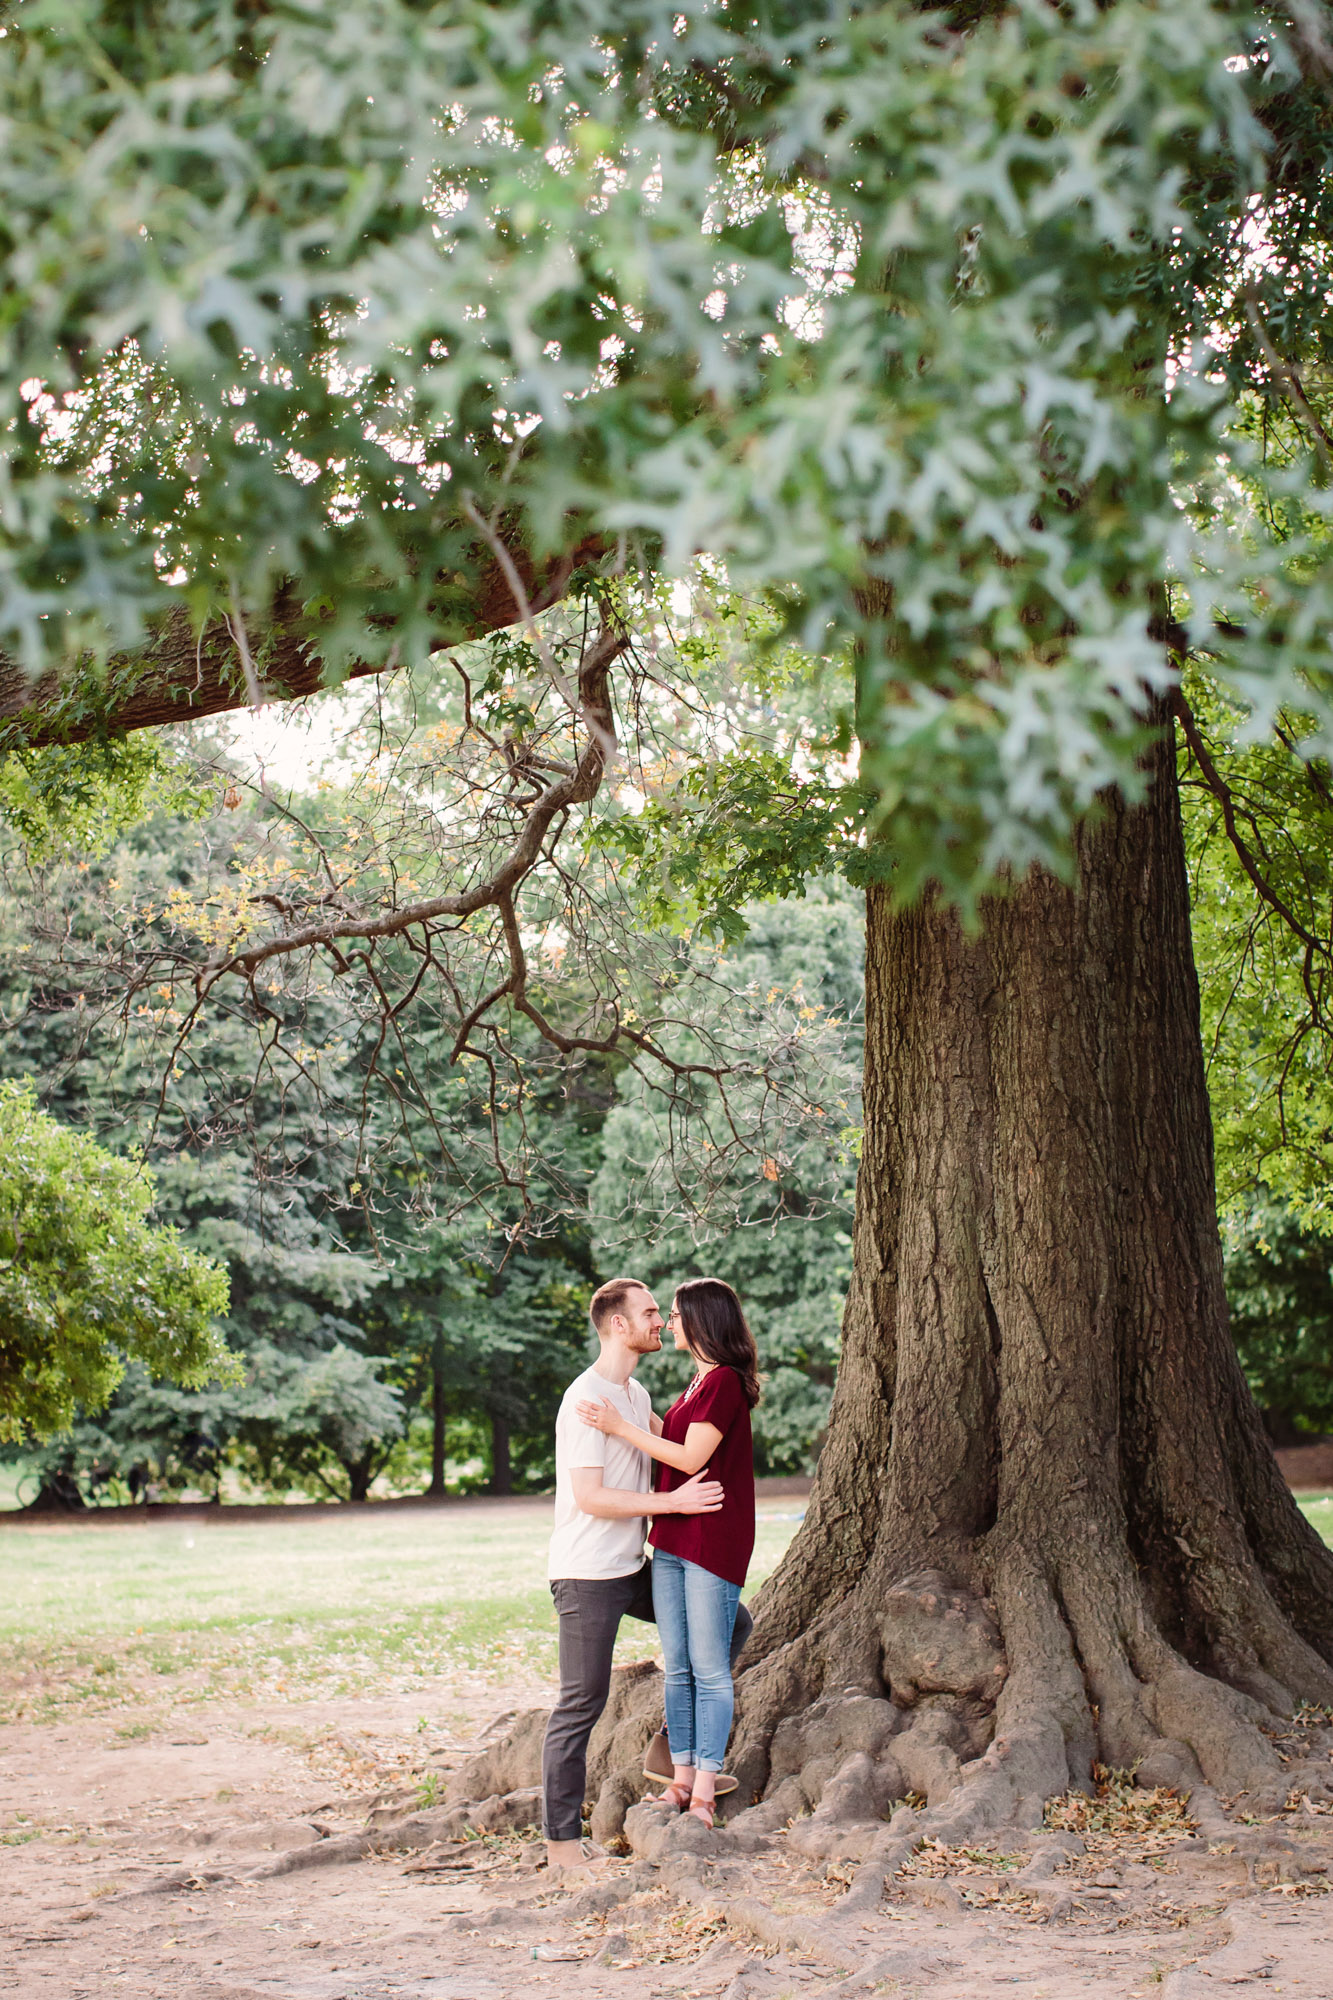 09_Kate_Sam_Prospect_Park_Brooklyn_Engagement_Photos_161.jpg